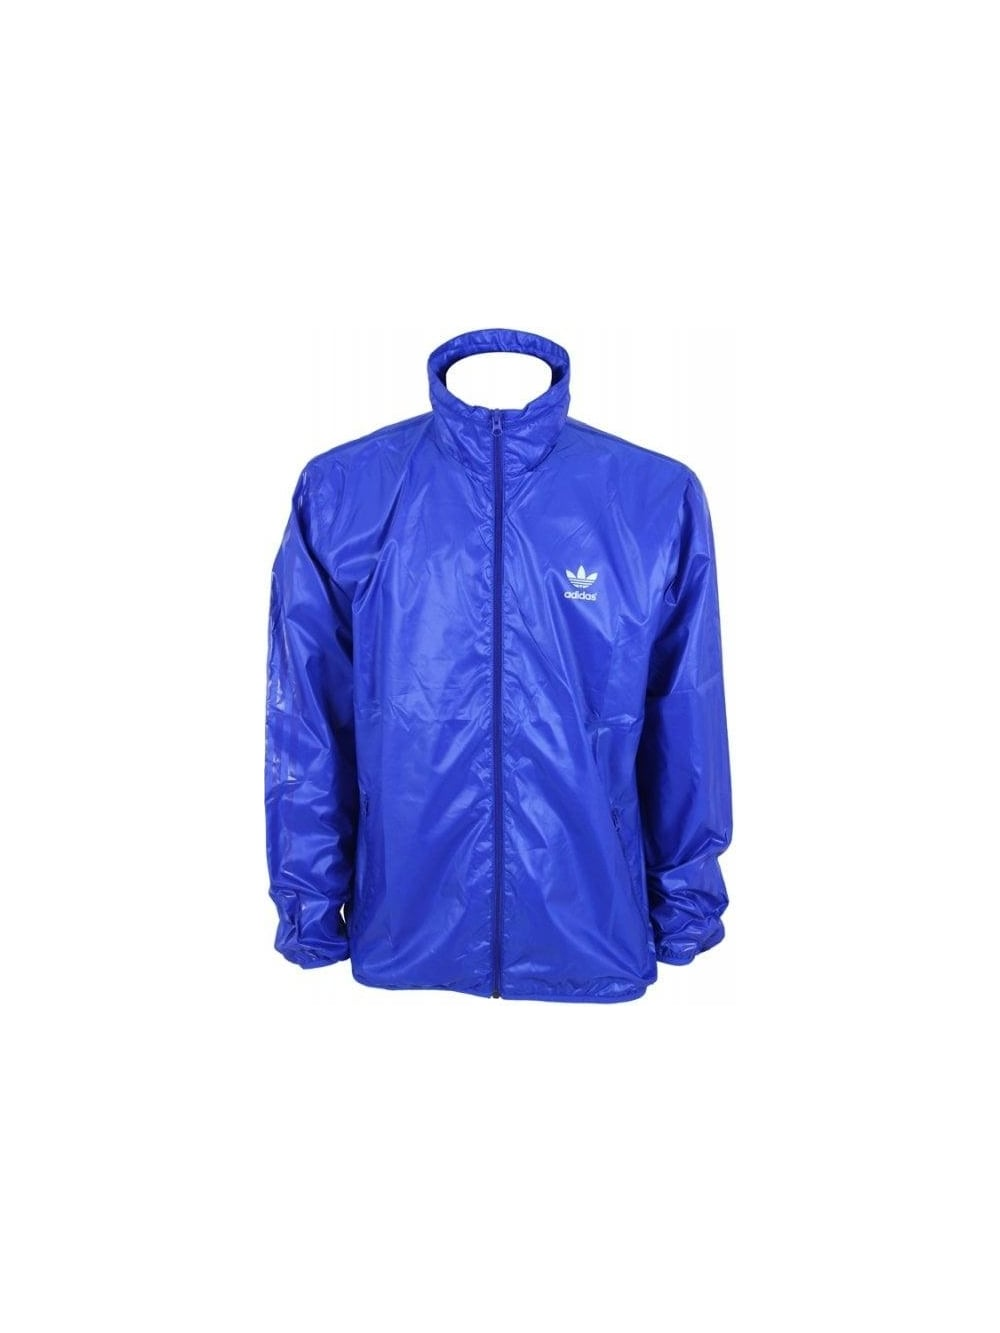 adidas originals fb lite windbreaker in true blue